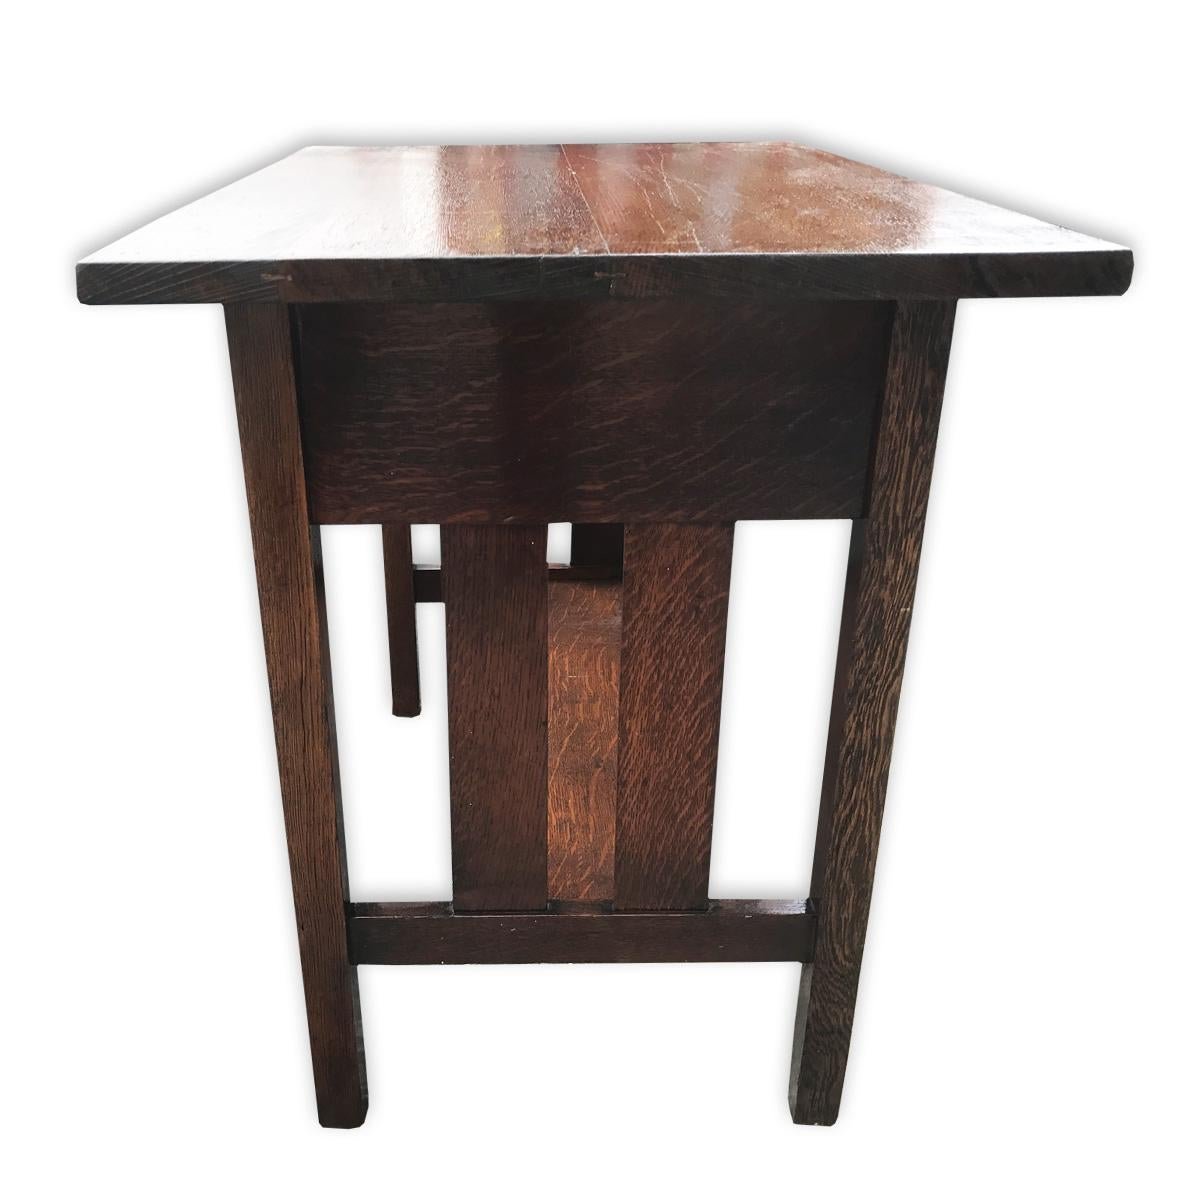 Antique Arts And Crafts Mission Tiger Oak Crafts Hall Table   Image 3 Of 4